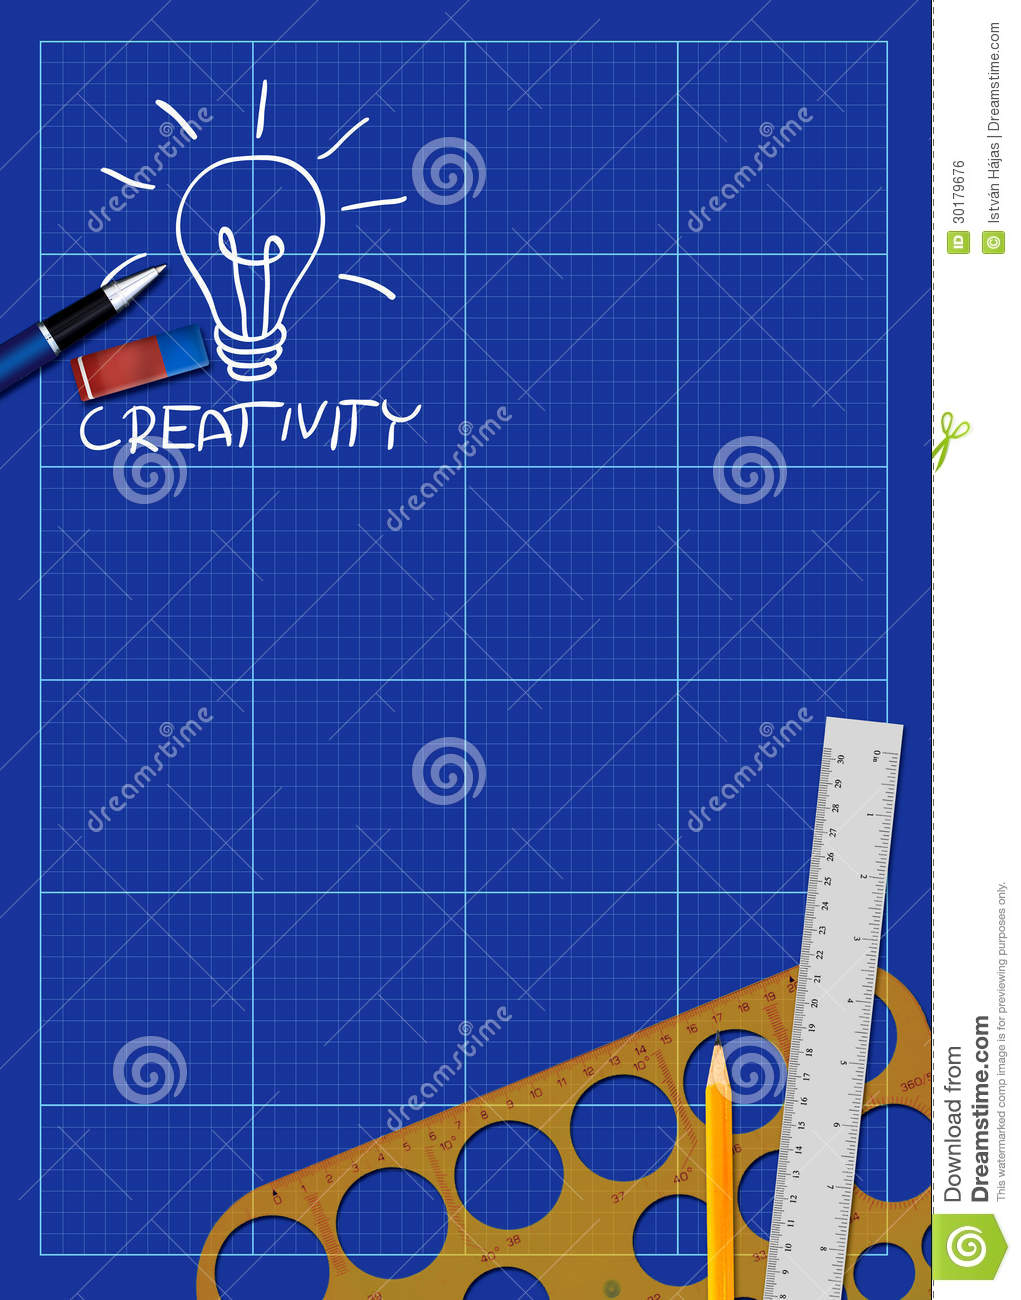 Business blueprint background stock illustration illustration of business blueprint background idea paper royalty free stock photo download business blueprint malvernweather Gallery